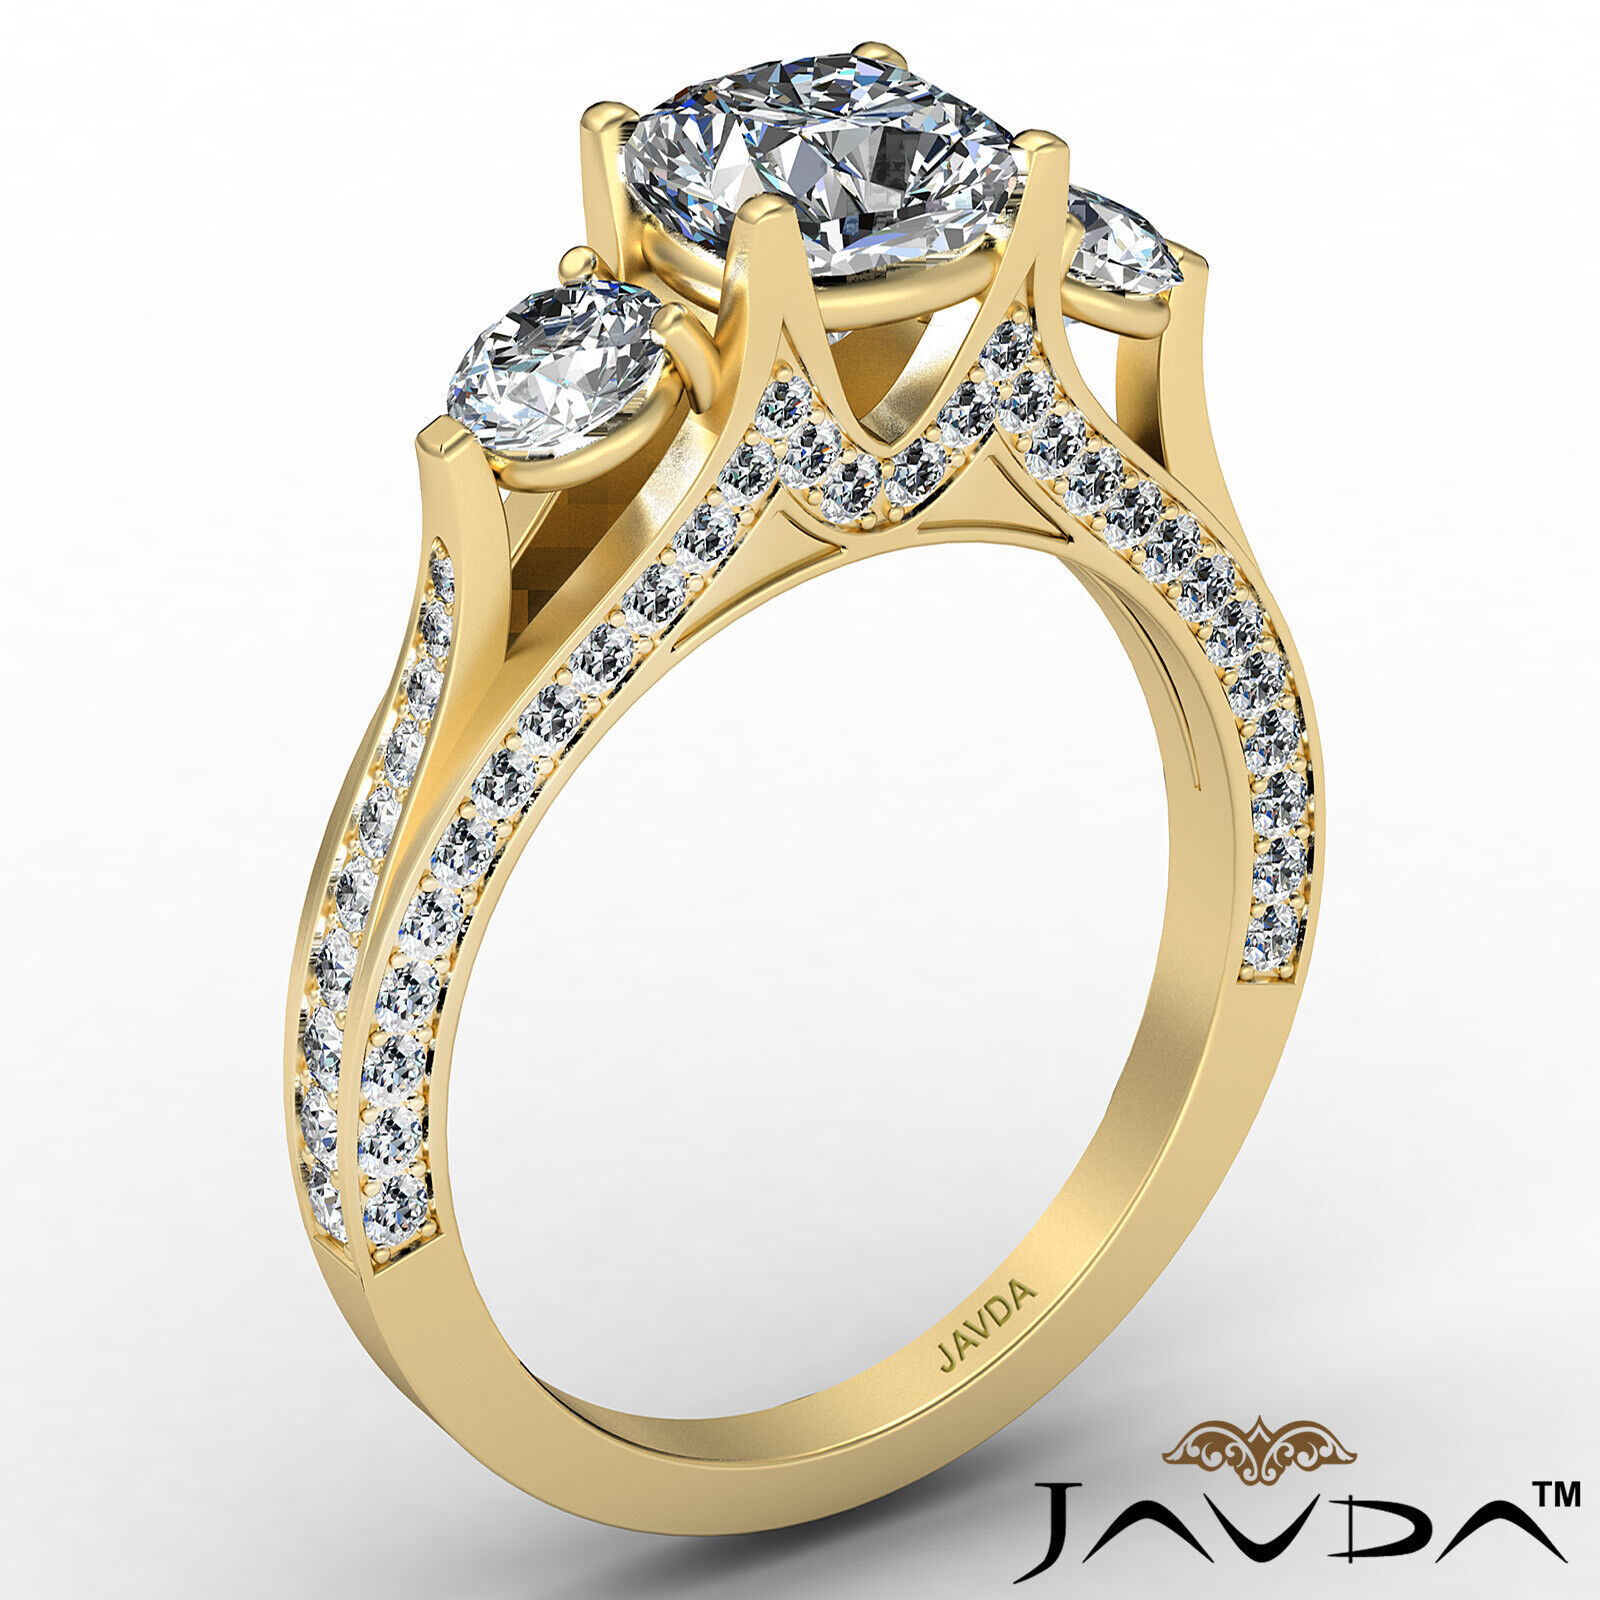 Cushion Diamond Engagement Ring Certified by GIA E Color & VVS1 clarity 2.1 ctw 4